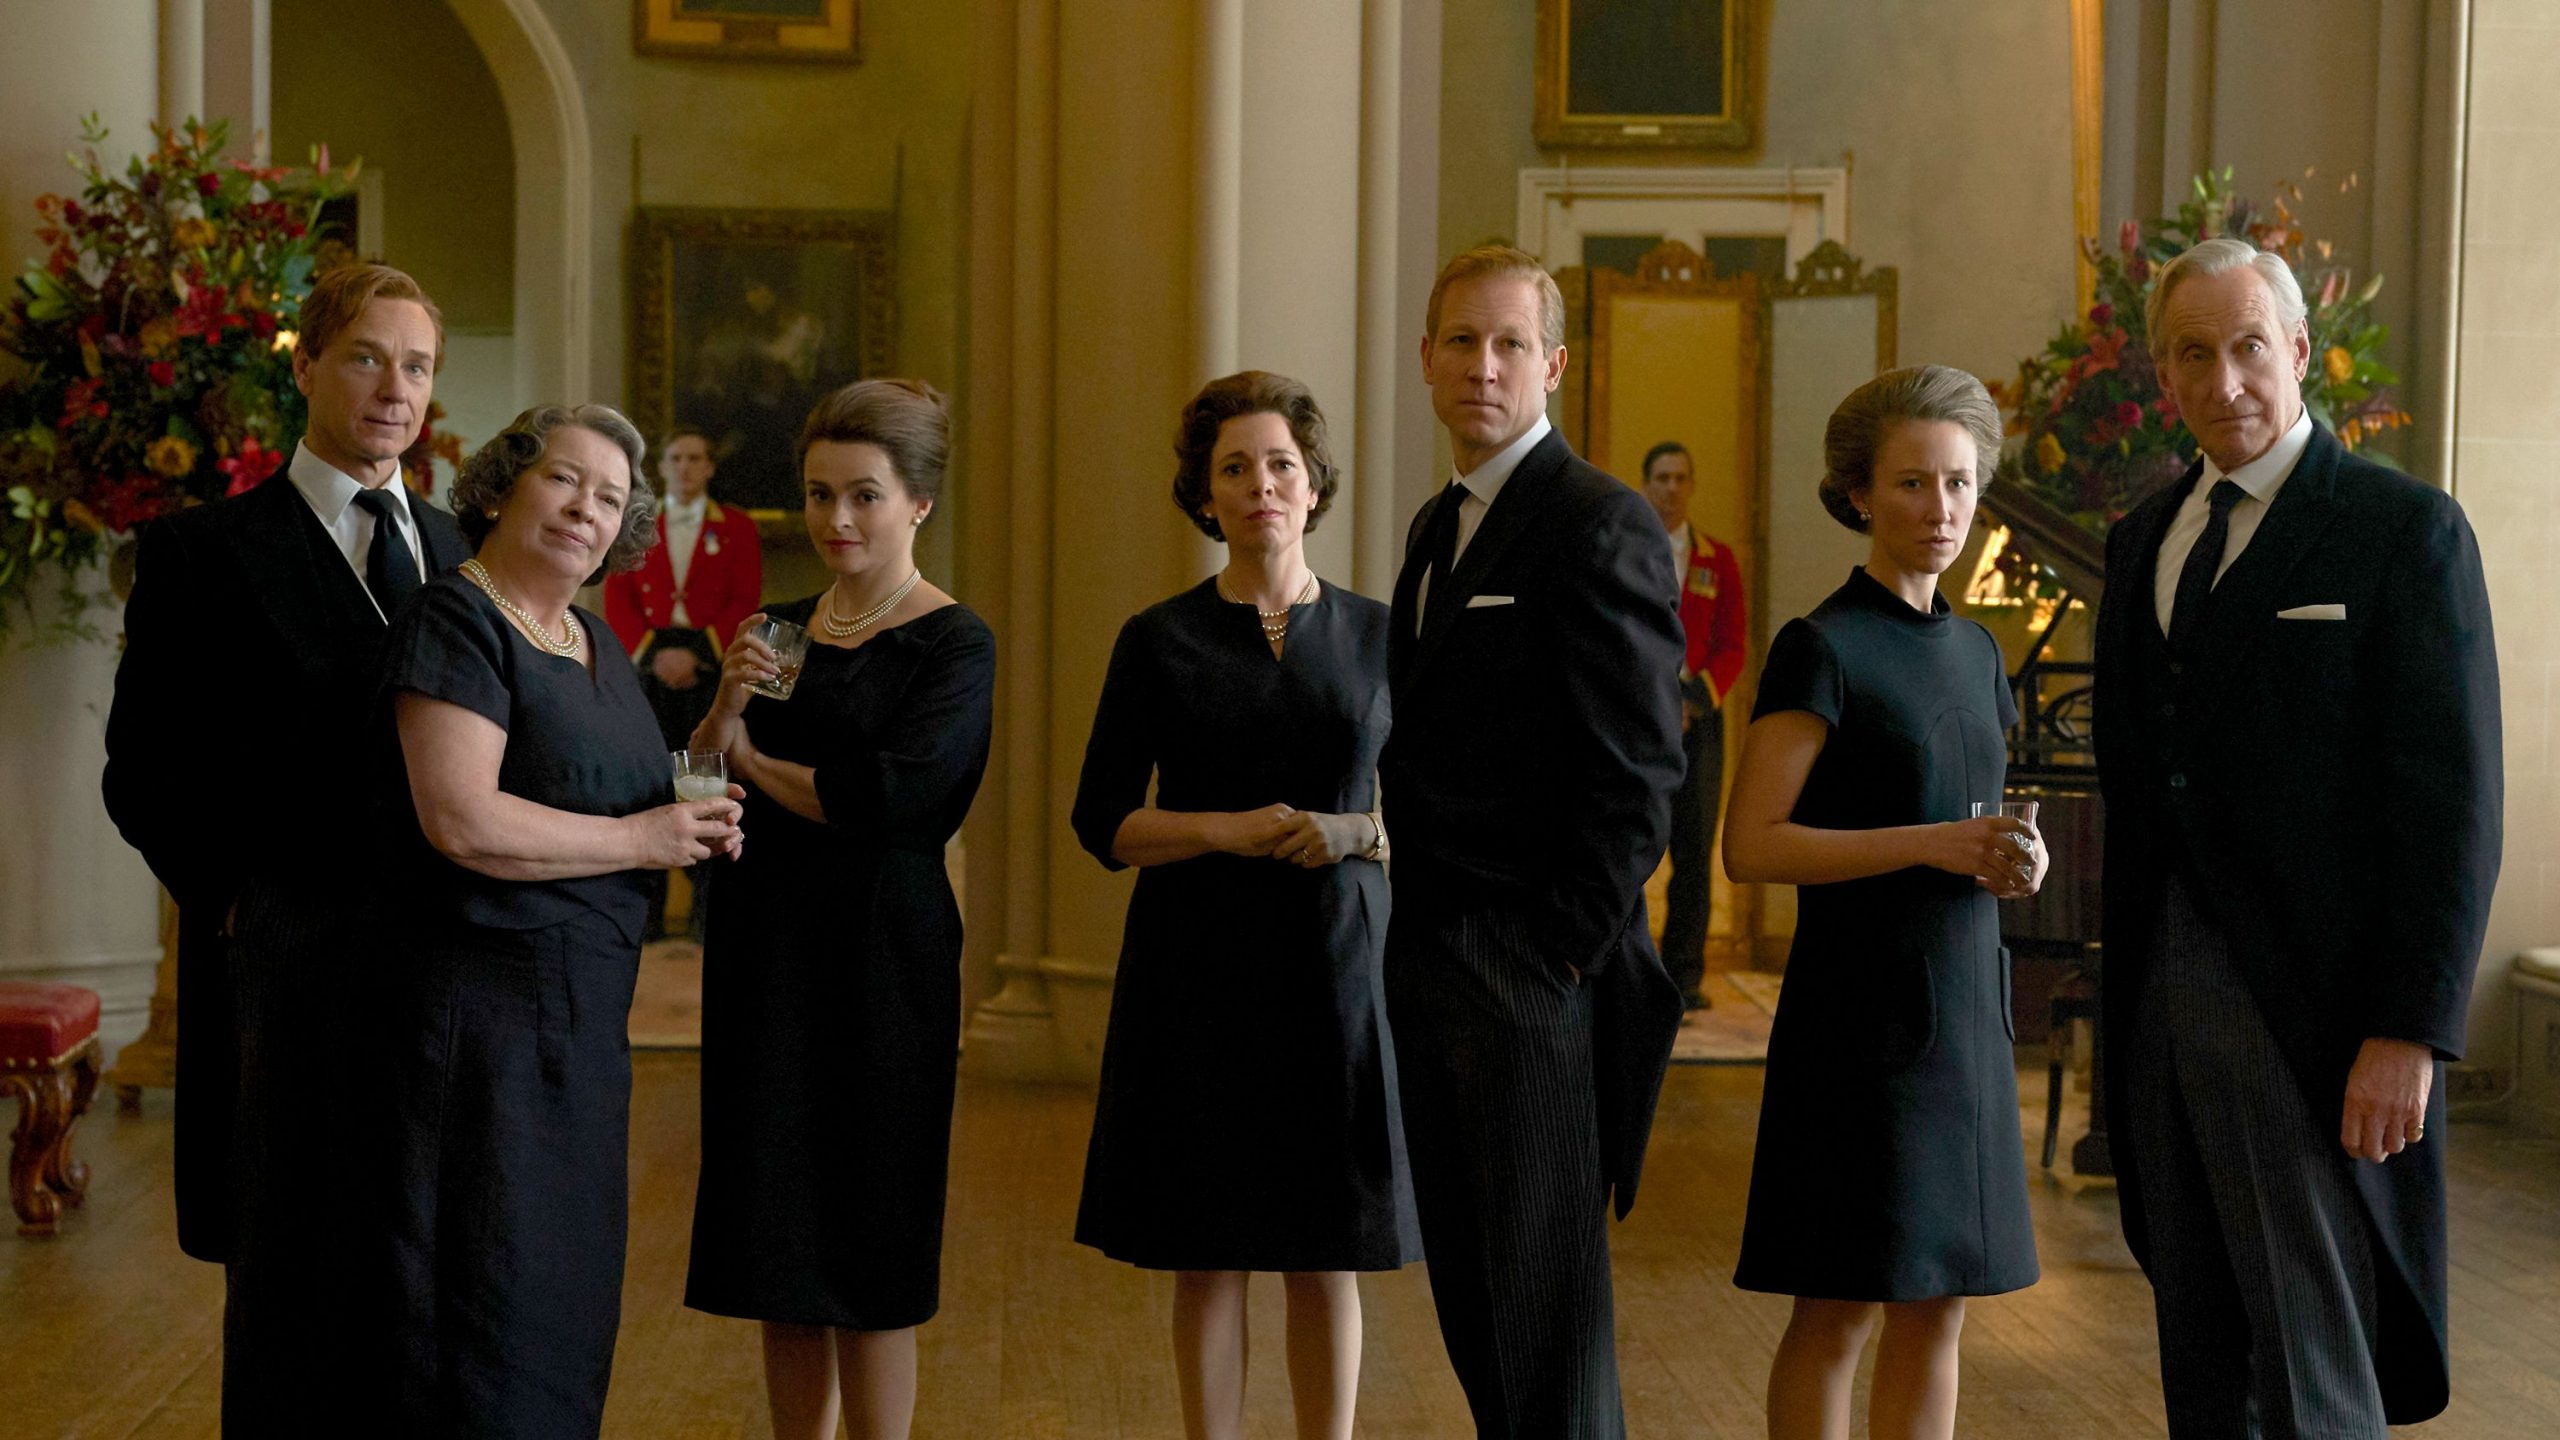 , The Crown Season 4 Release Date And What Is In The Storyline?